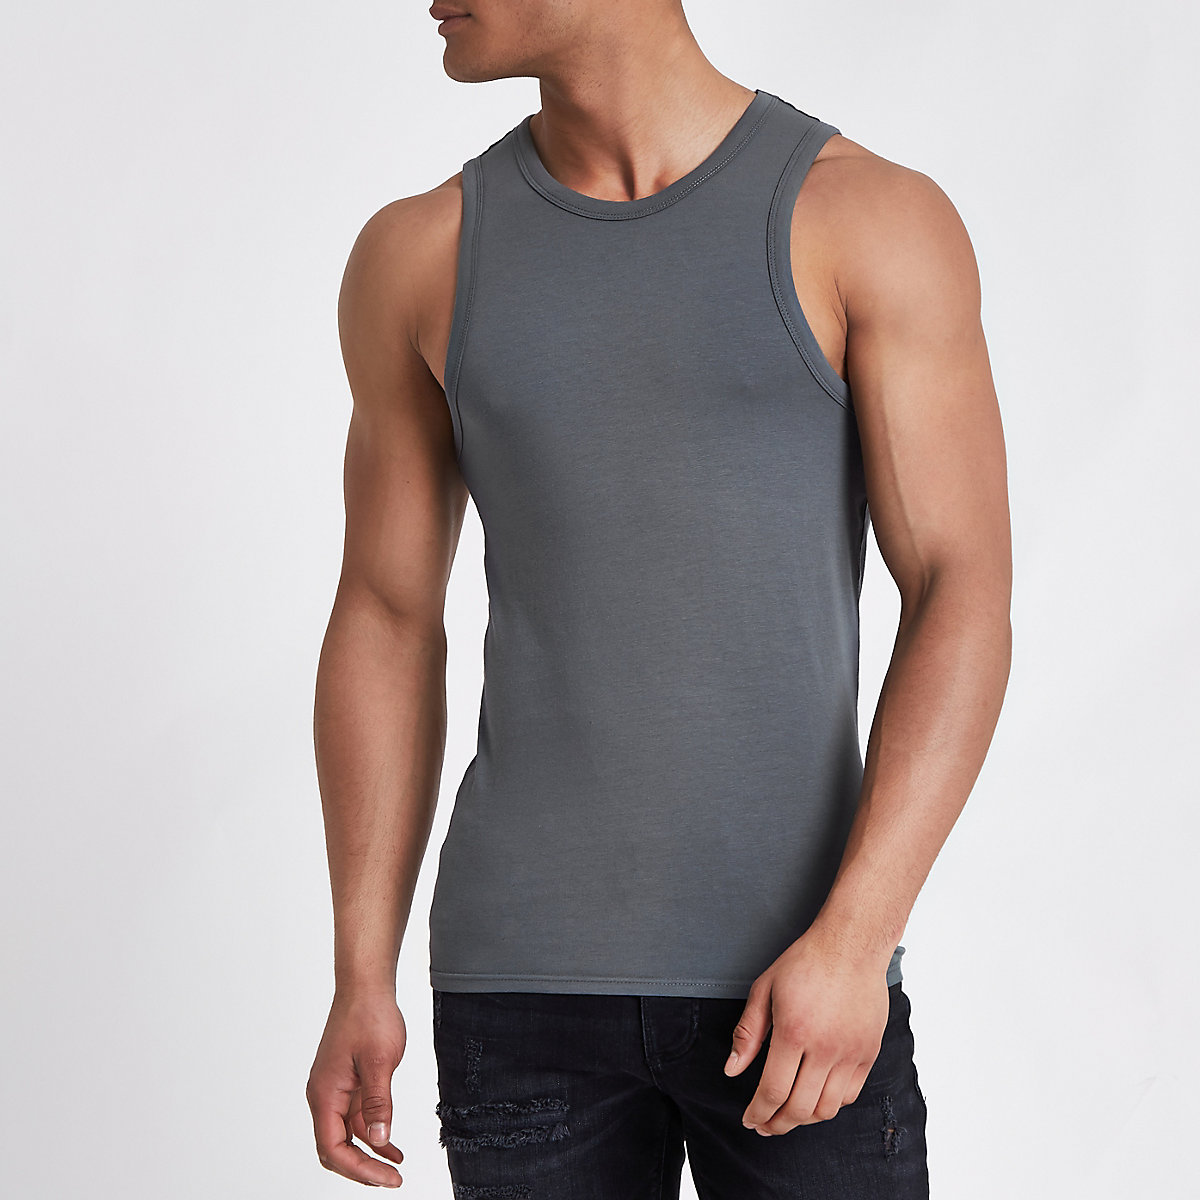 Dark grey muscle fit tank top